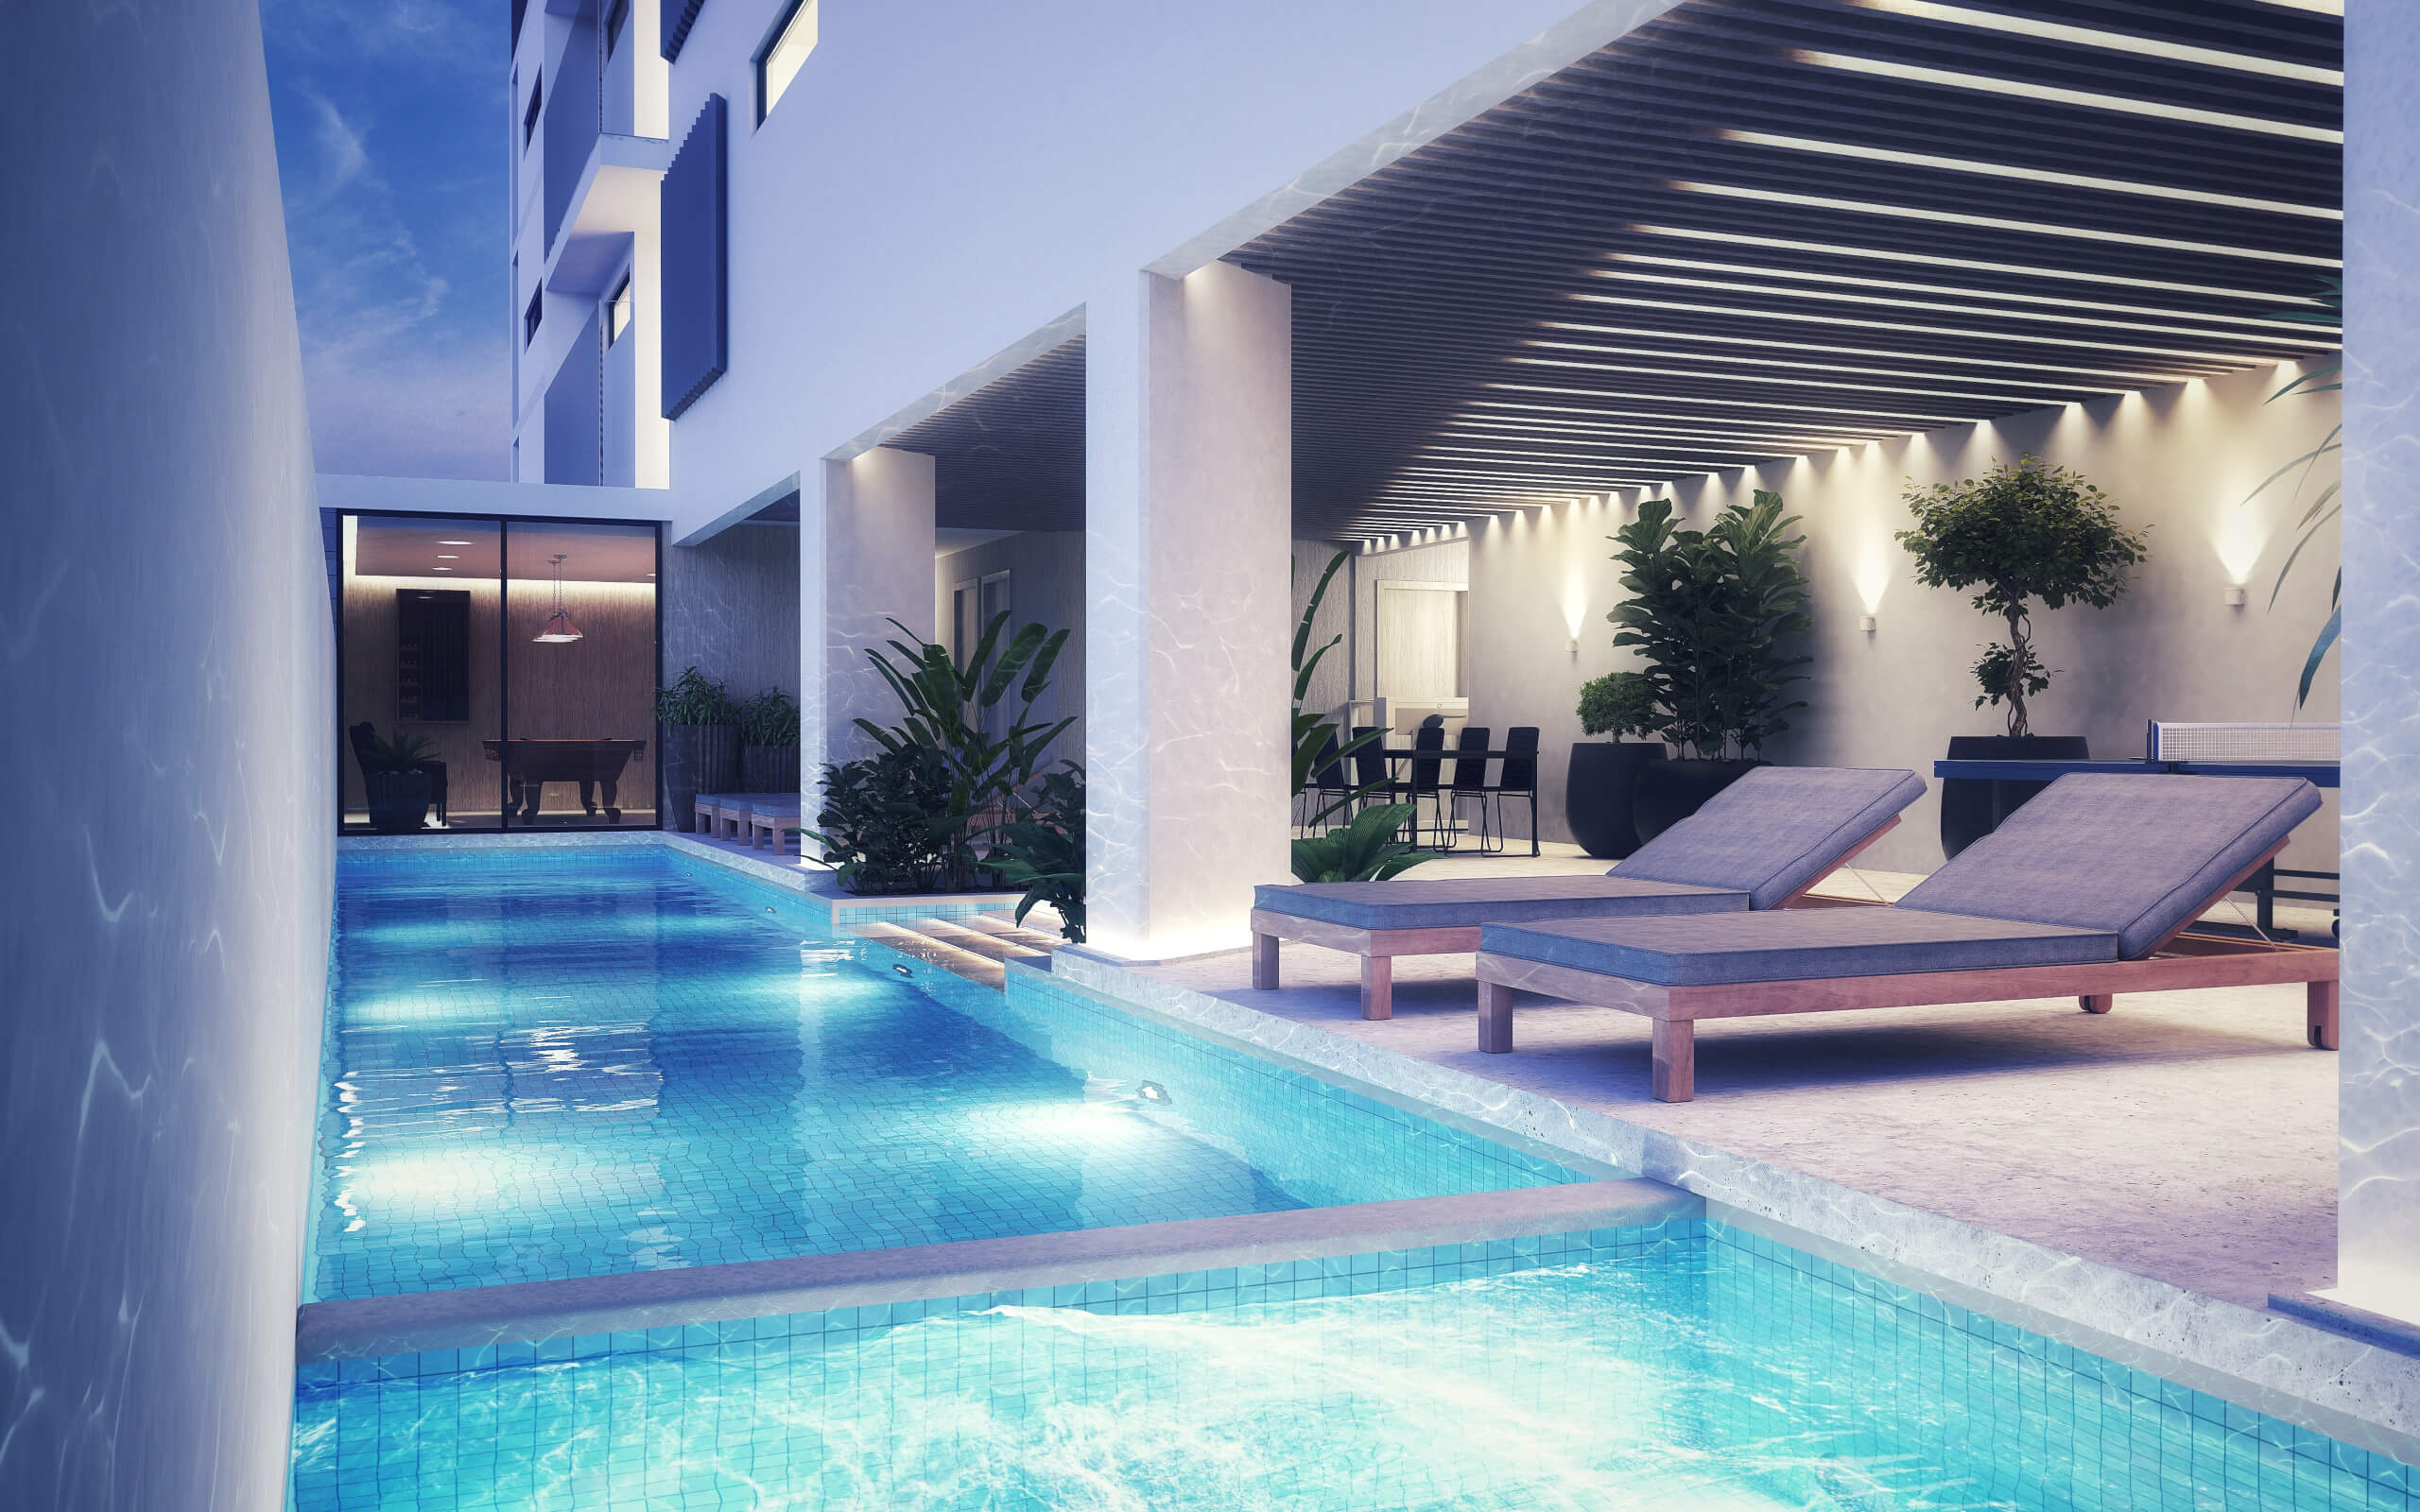 pool side_hyde park place